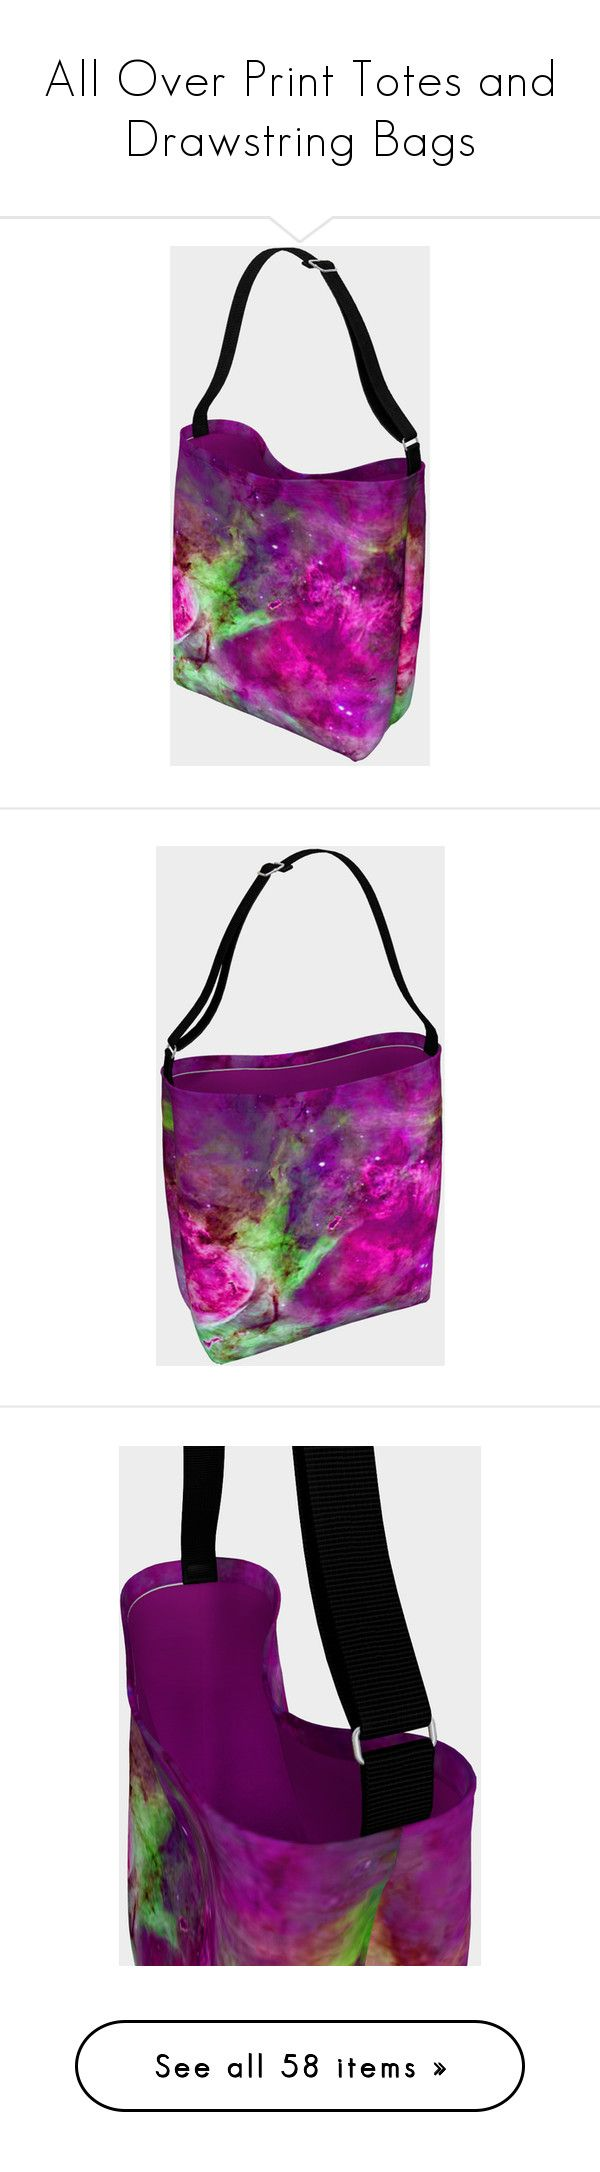 """""""All Over Print Totes and Drawstring Bags"""" by sandyspider ❤ liked on Polyvore featuring bags, handbags, tote bags, totes, accessories, tote handbags, white tote, white handbags, orange tote and handbags totes"""